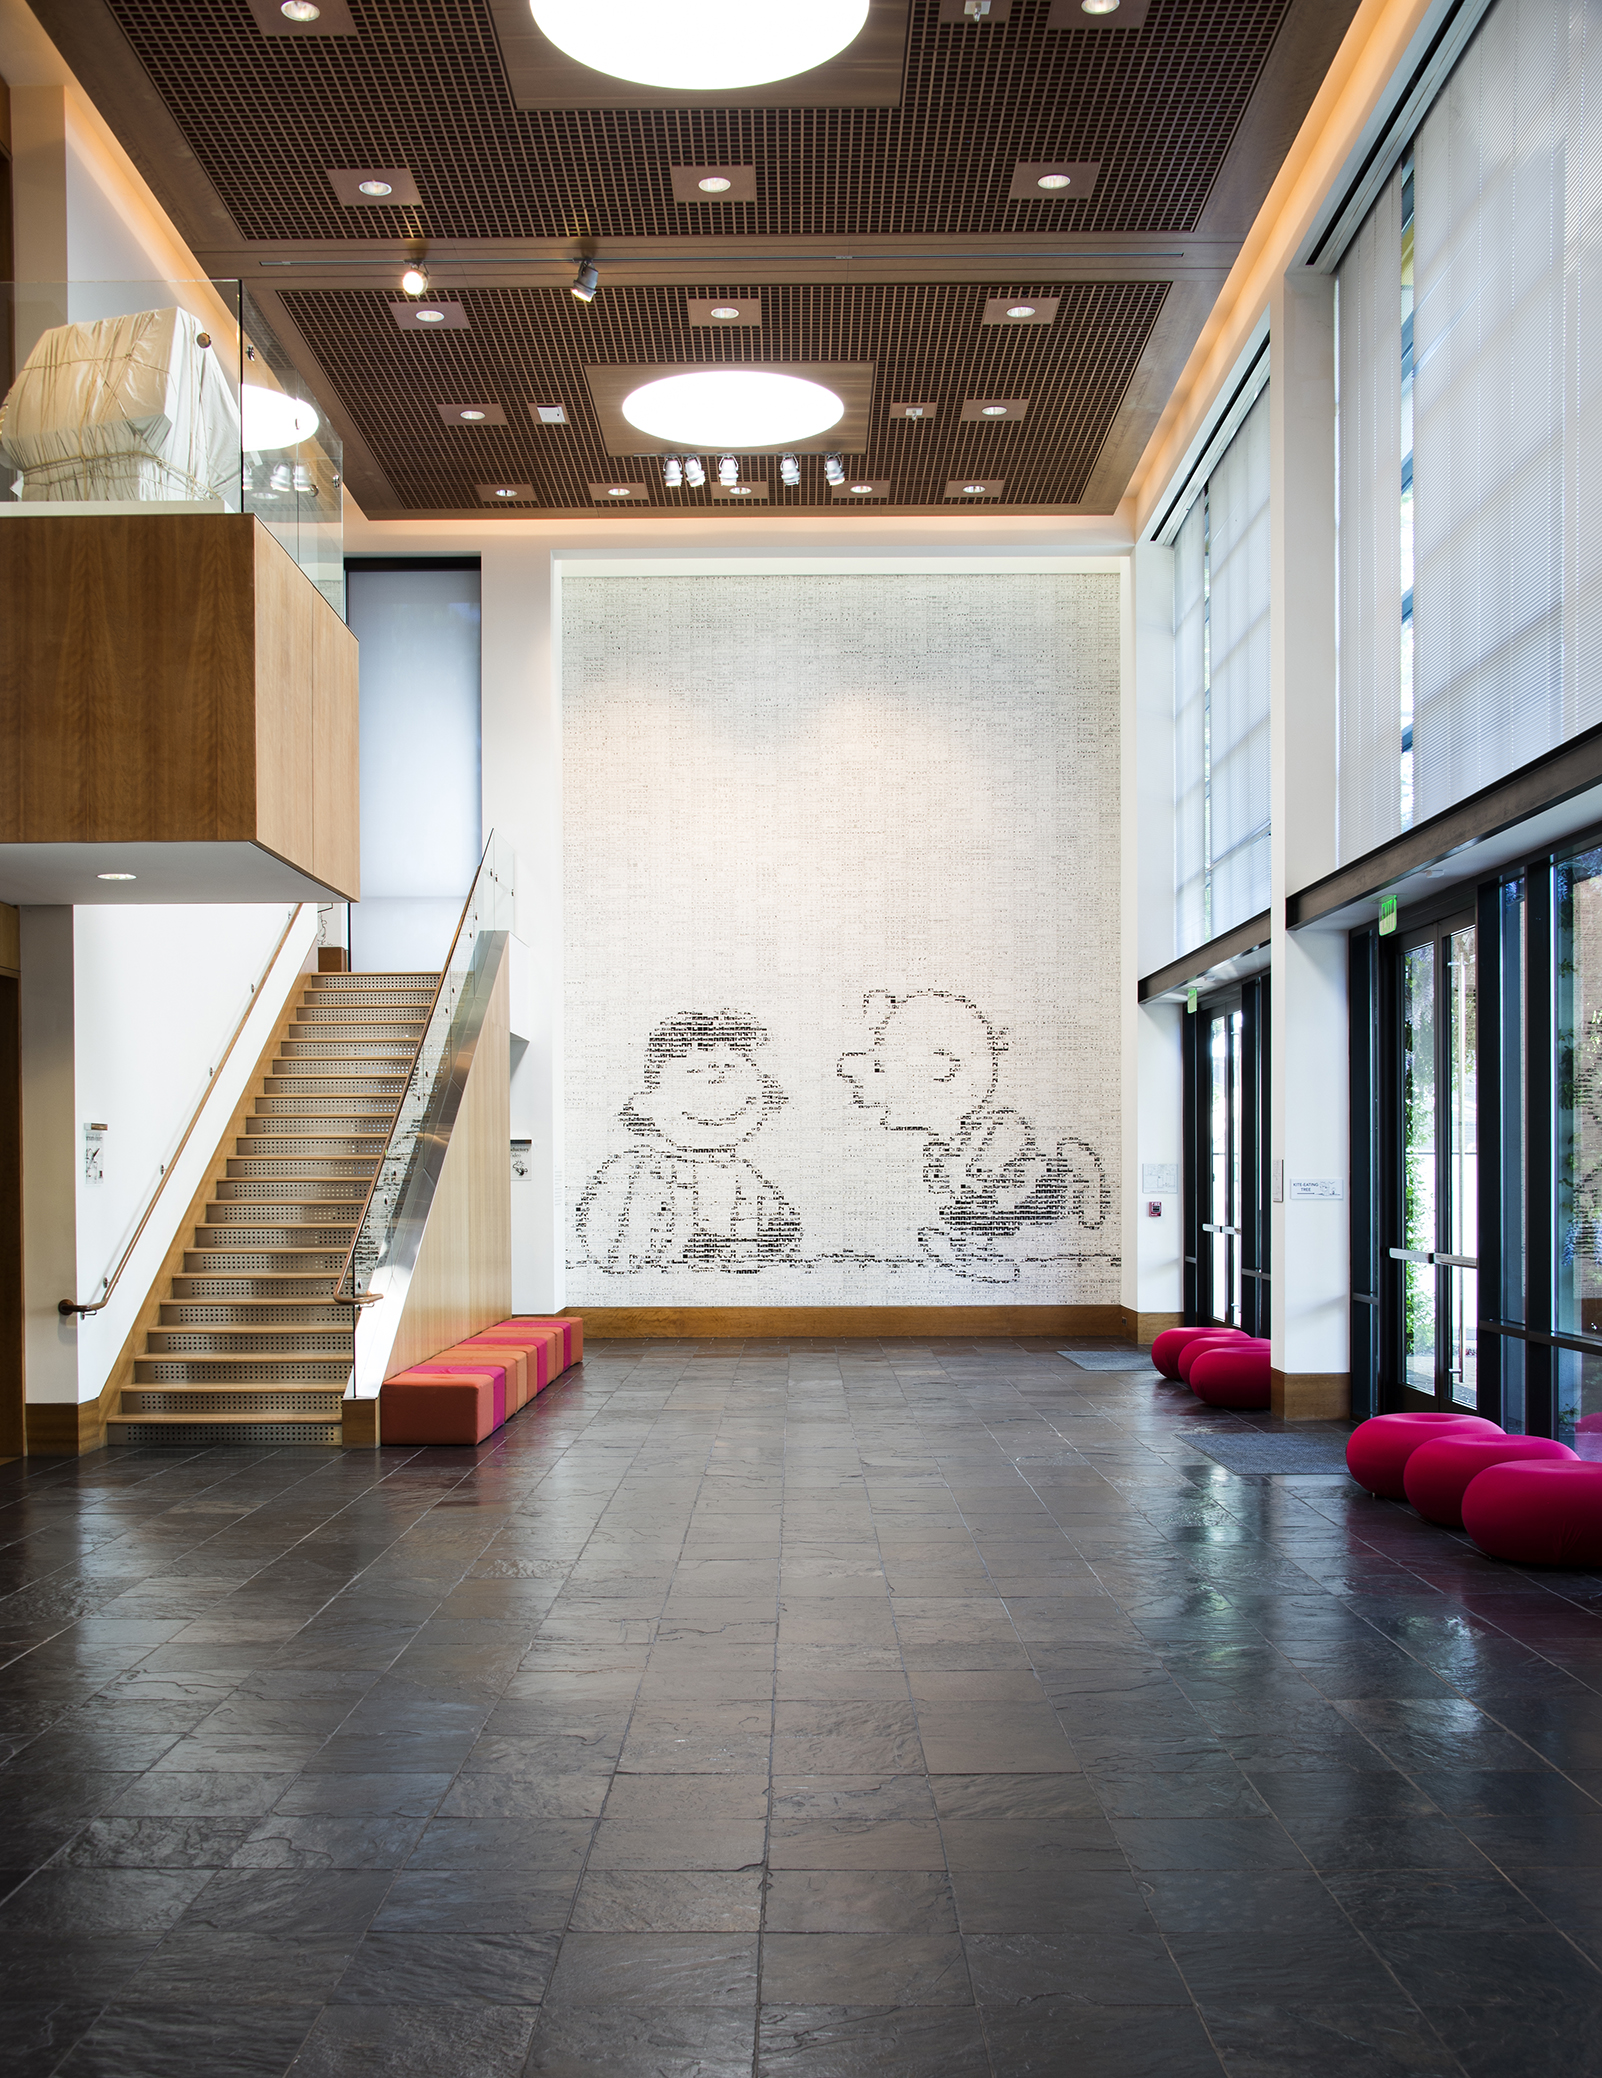 Photo by DJ Ashton, courtesy of the Charles M. Schulz Museum and Research Center Tile Mural in the Great Hall